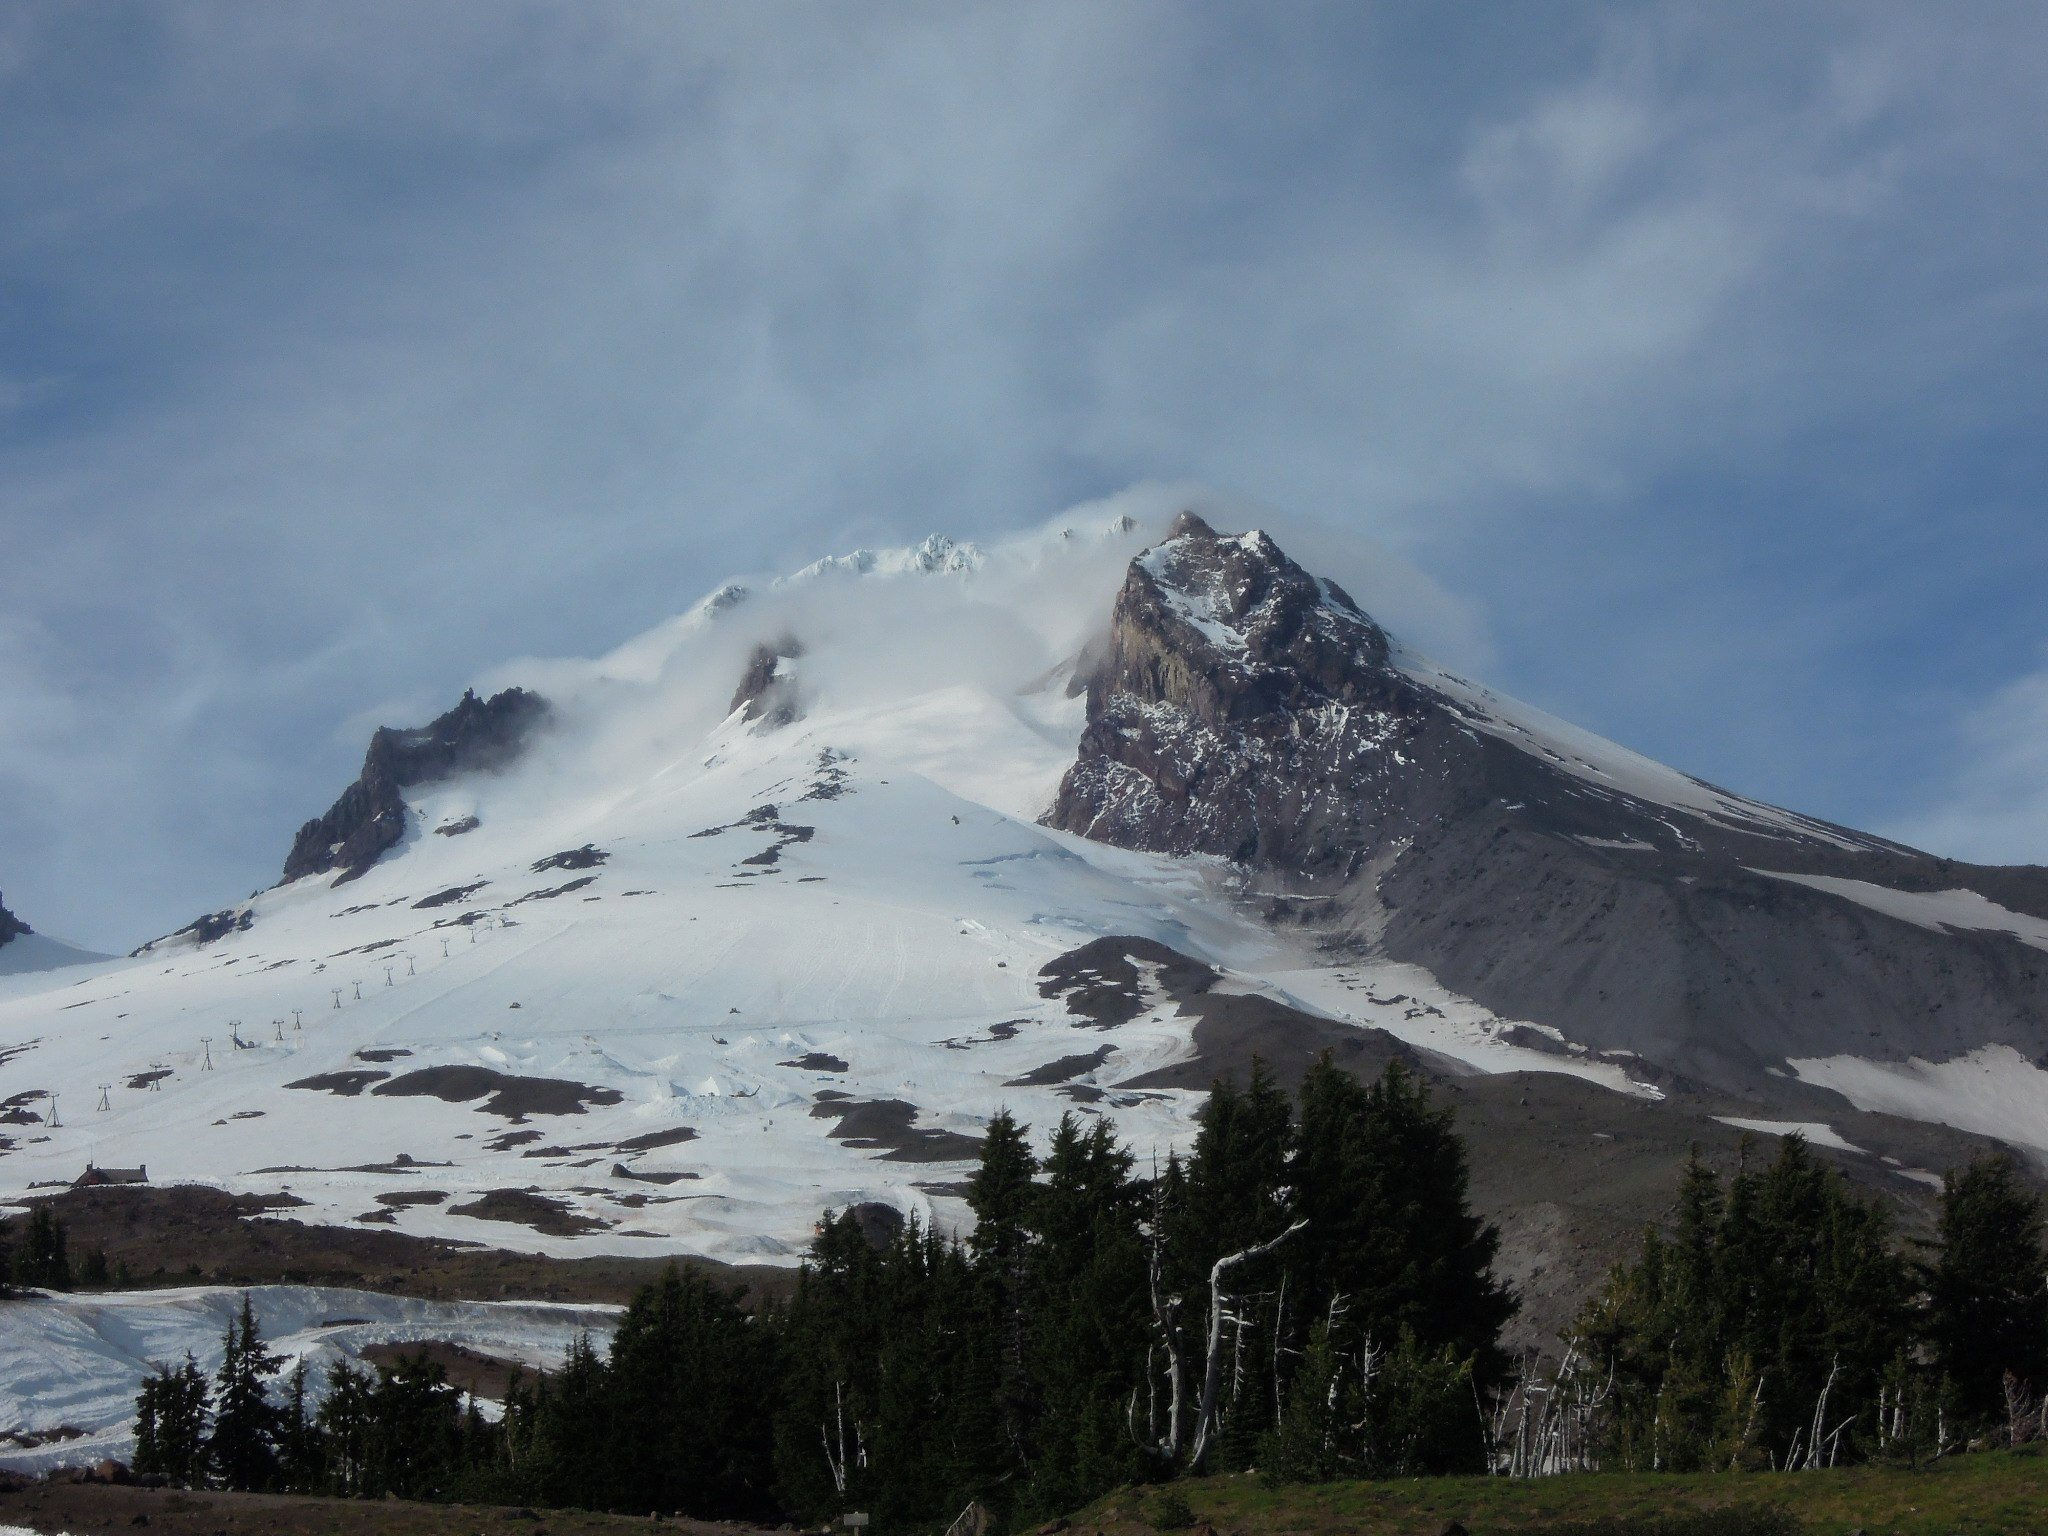 Oregon: Mt. Hood (11,240 feet) - summitchicks.com